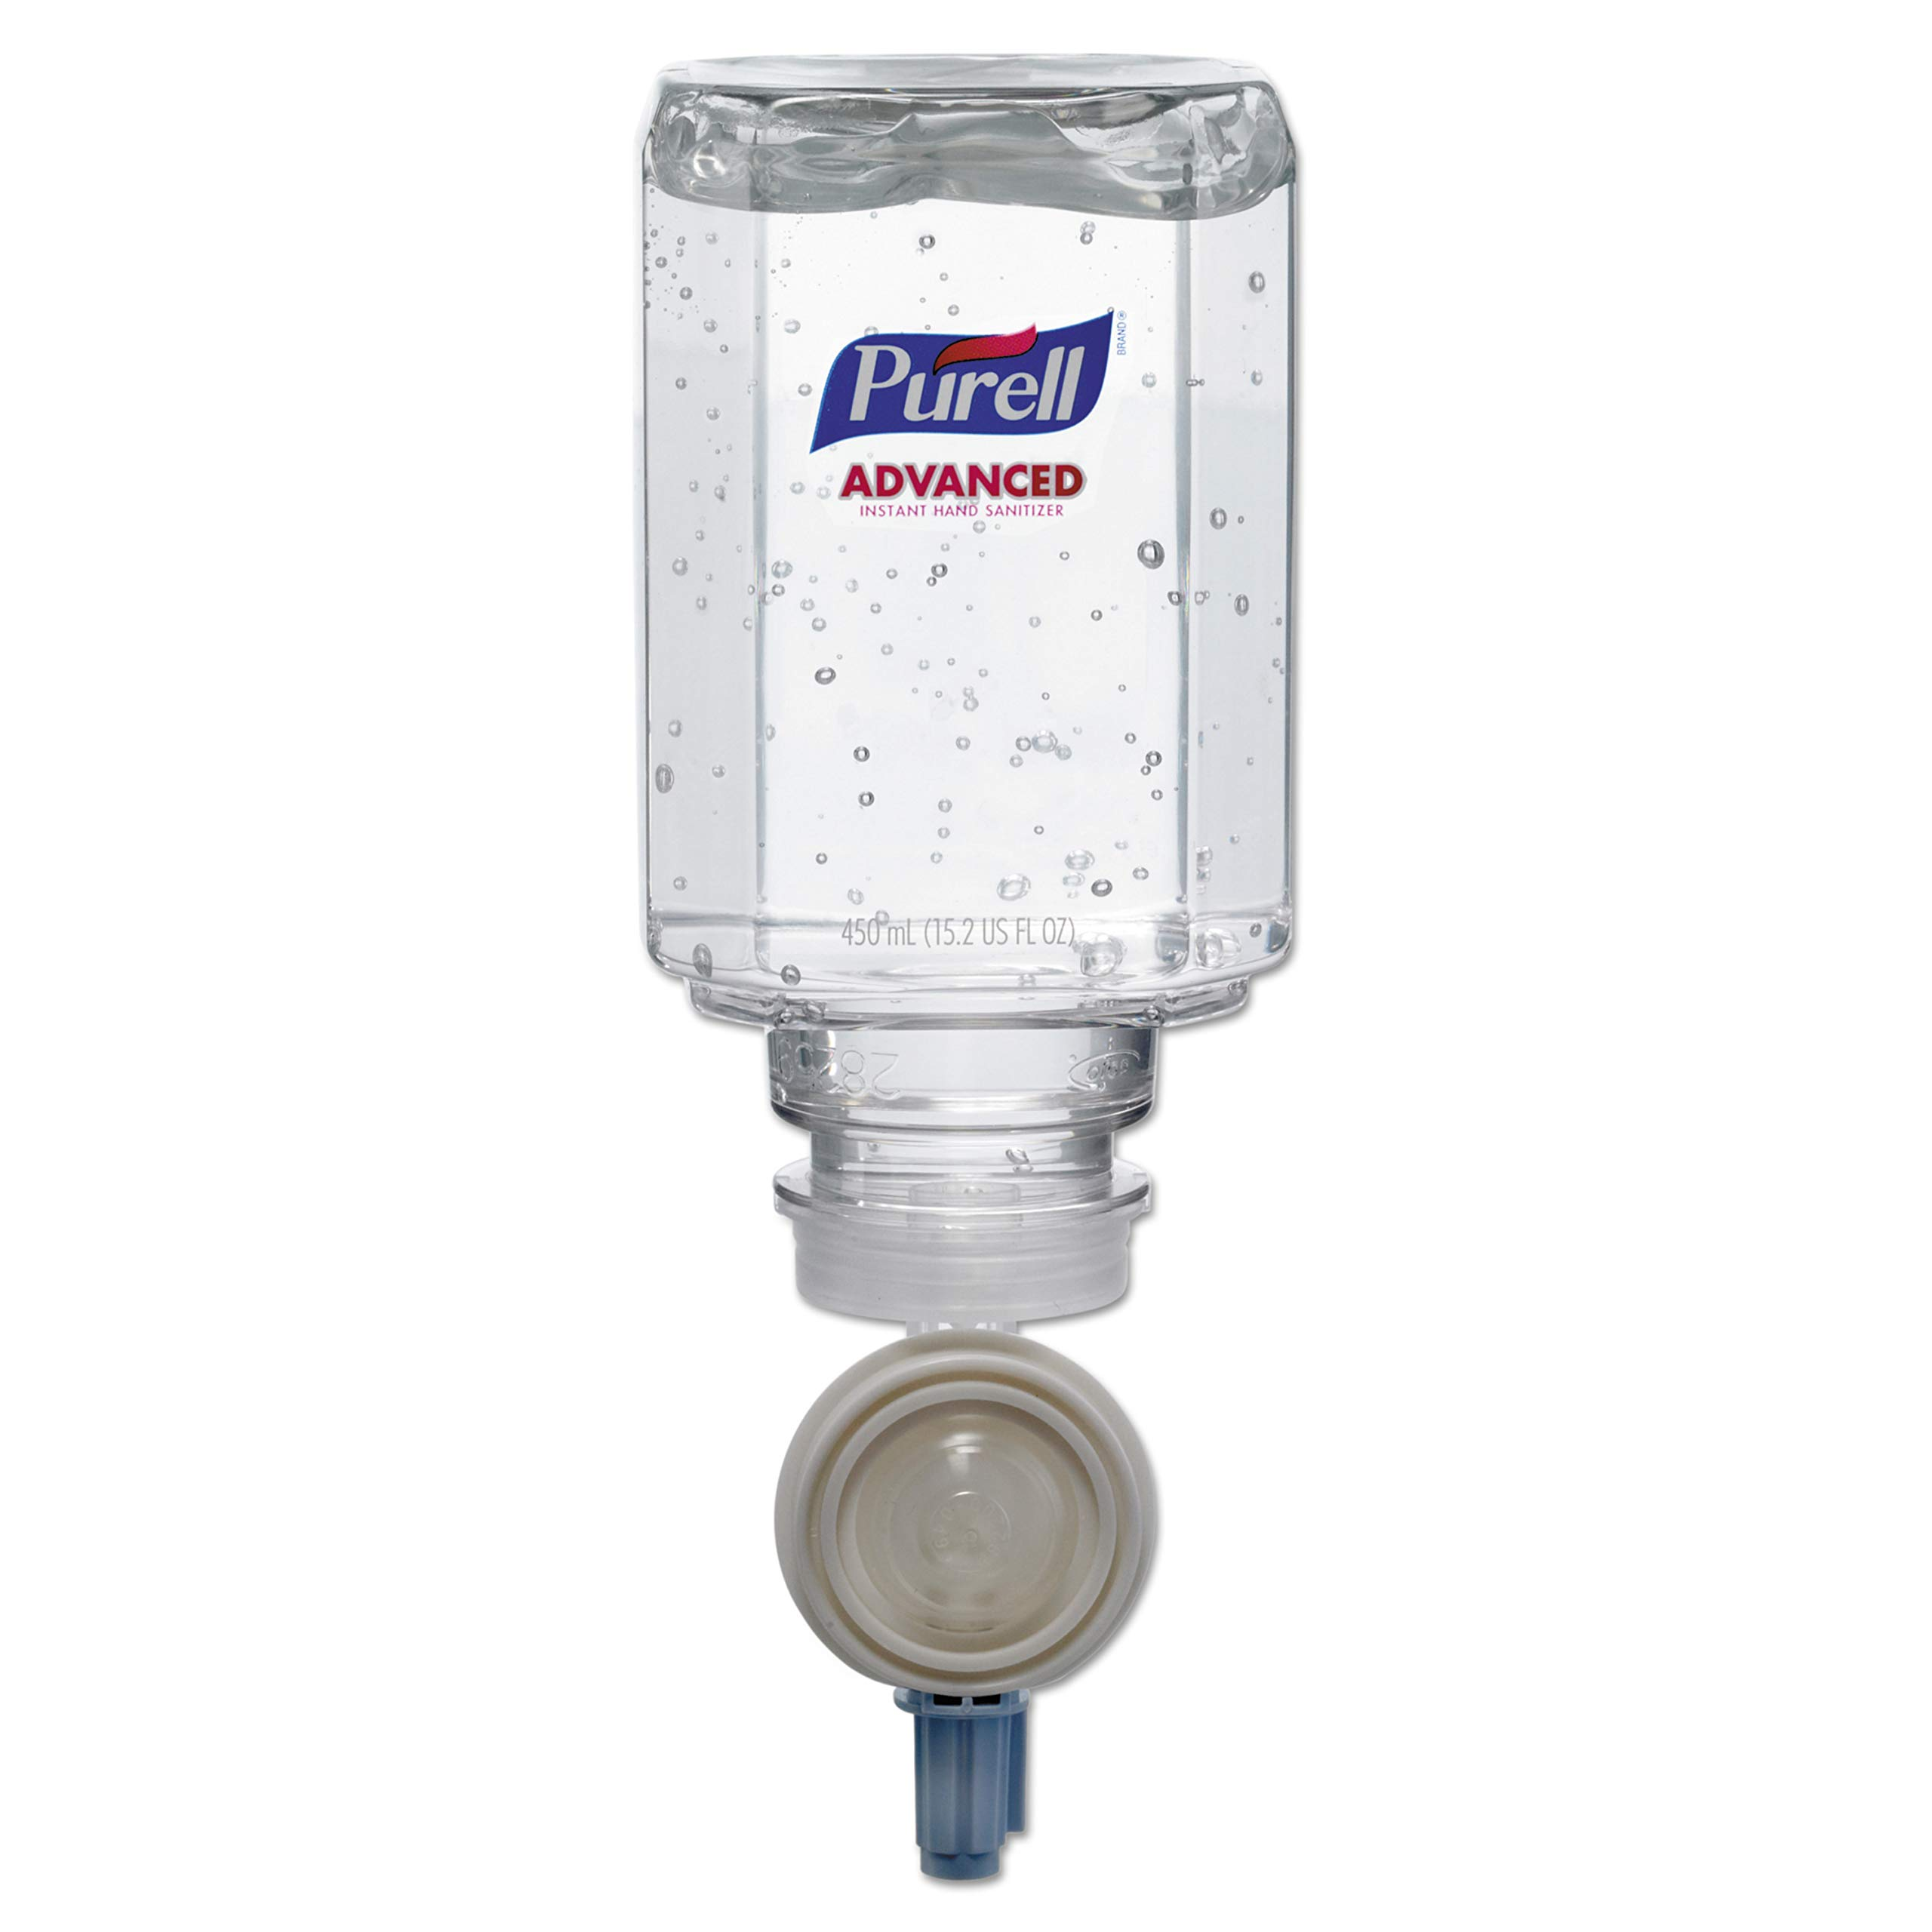 PURELL 145006 Advanced Instant Hand Sanitizer Gel Refill, 450mL (Case of 6)